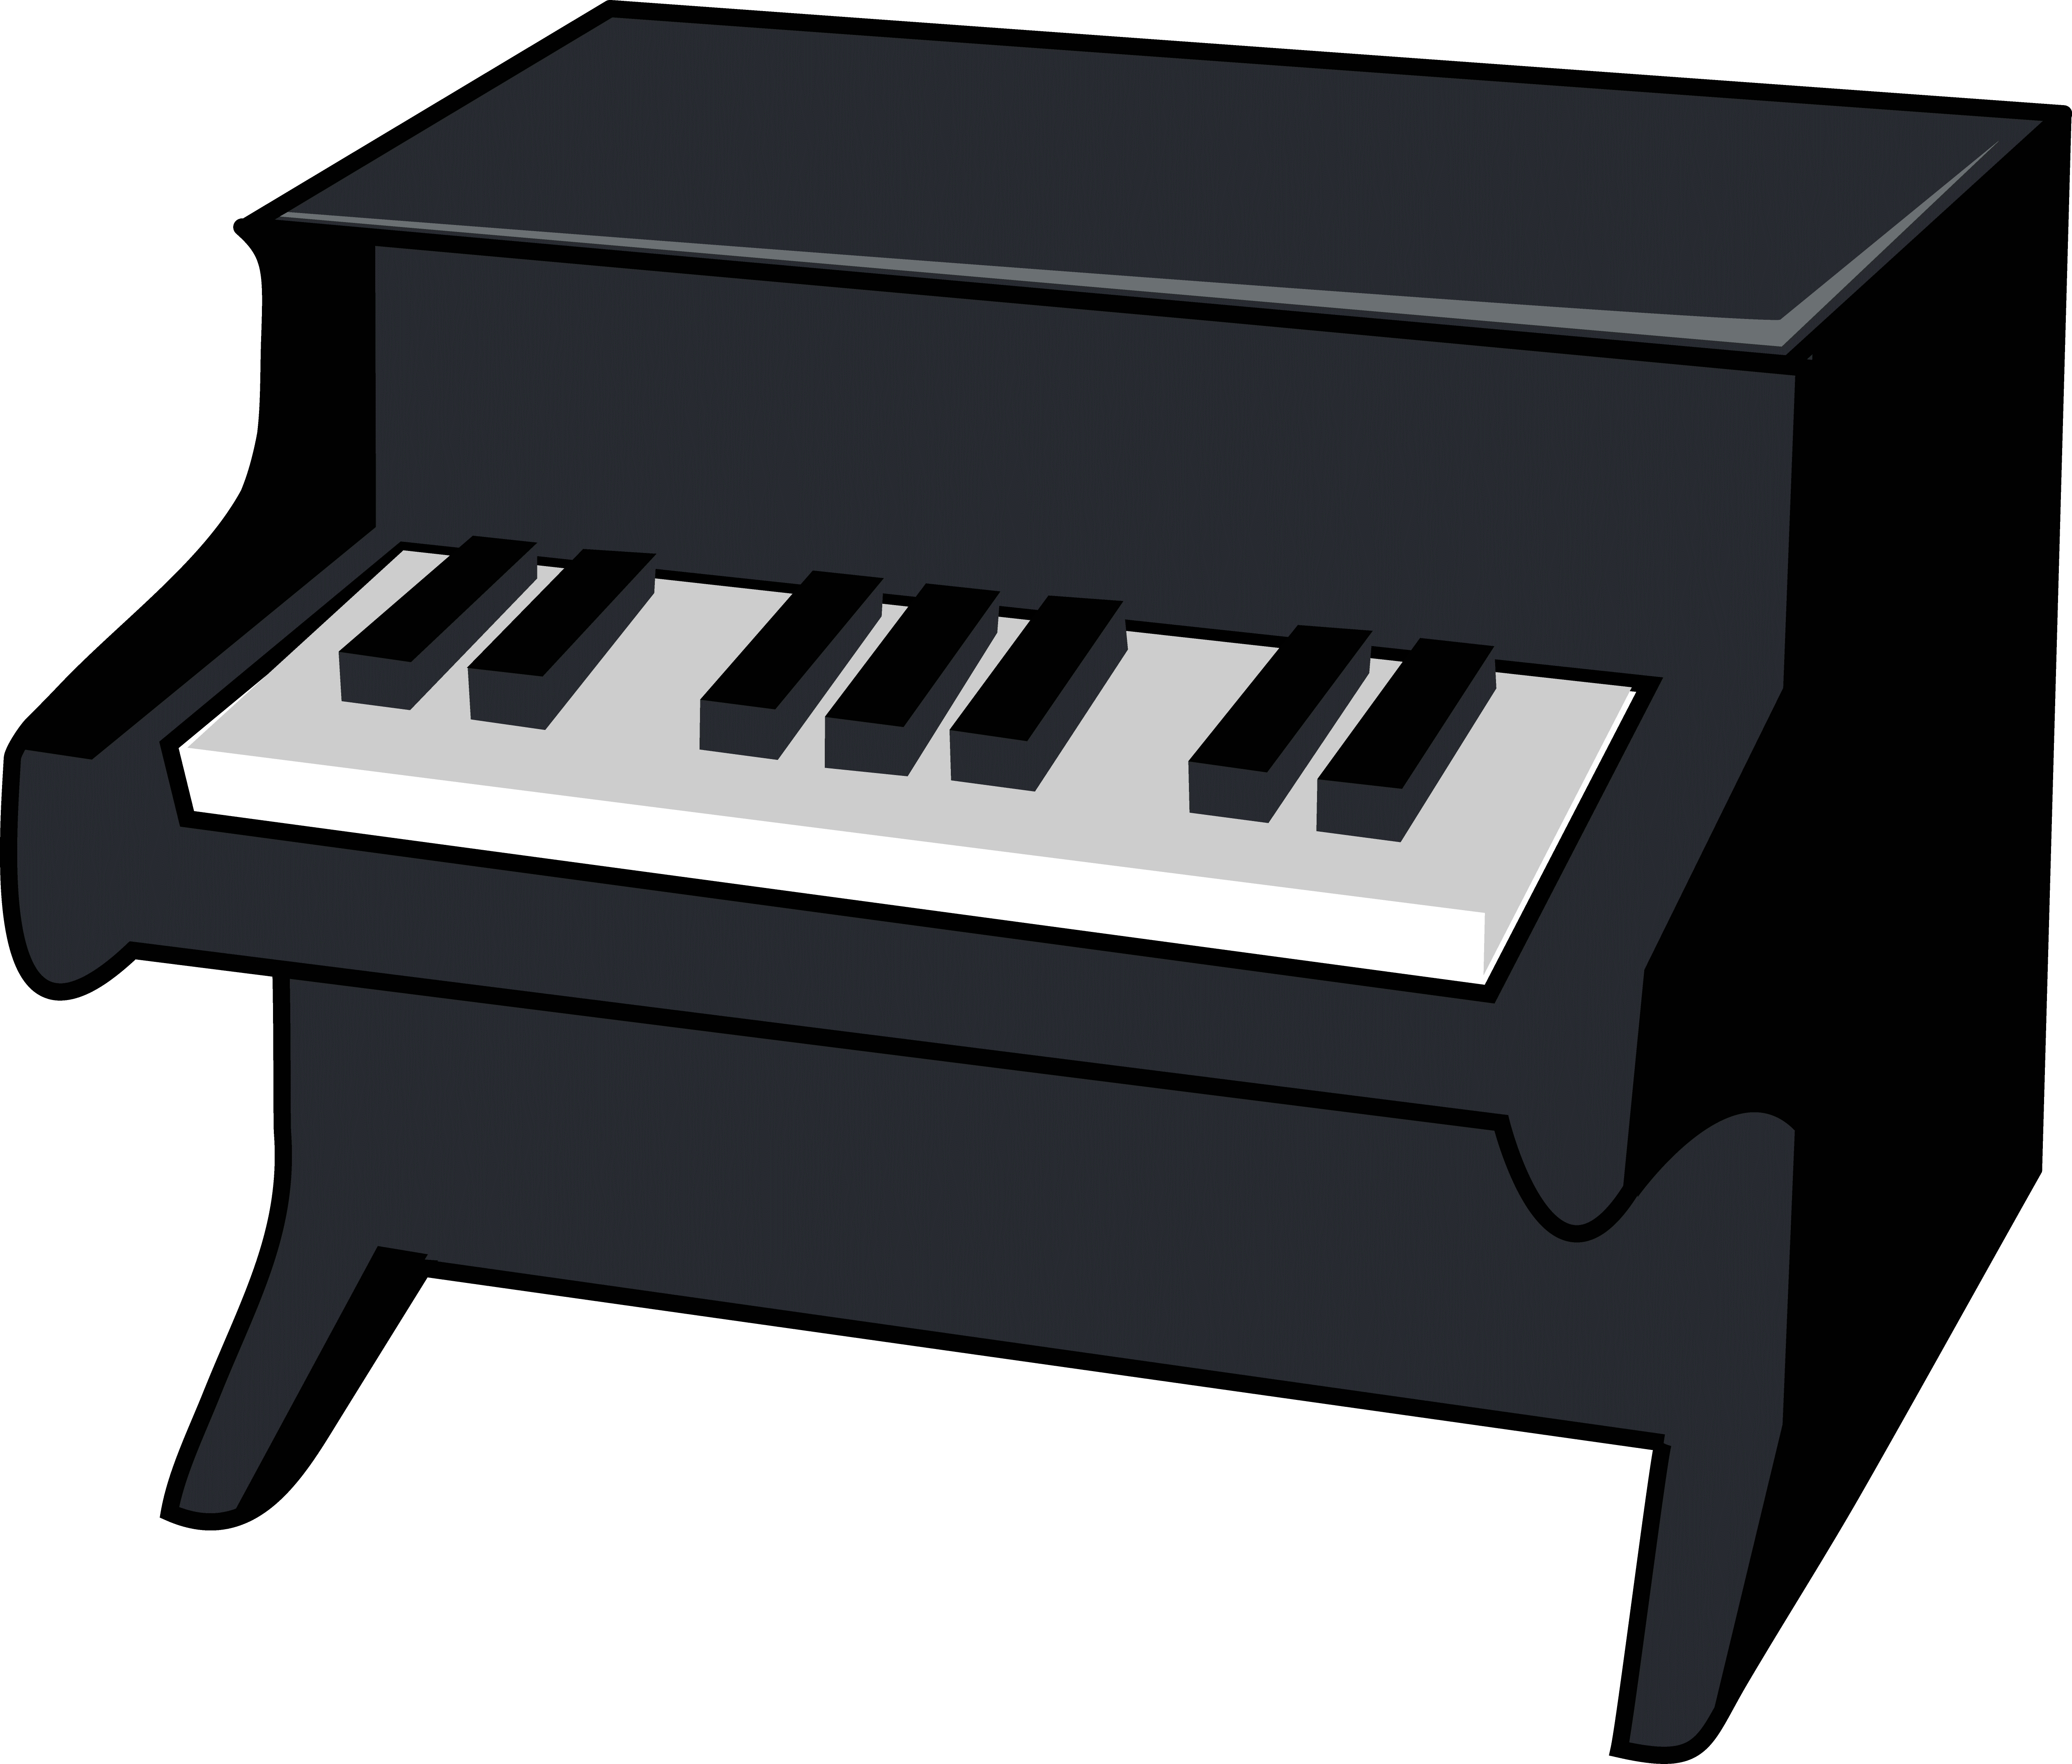 Cartoon instruments cliparts free. Piano clipart clear background